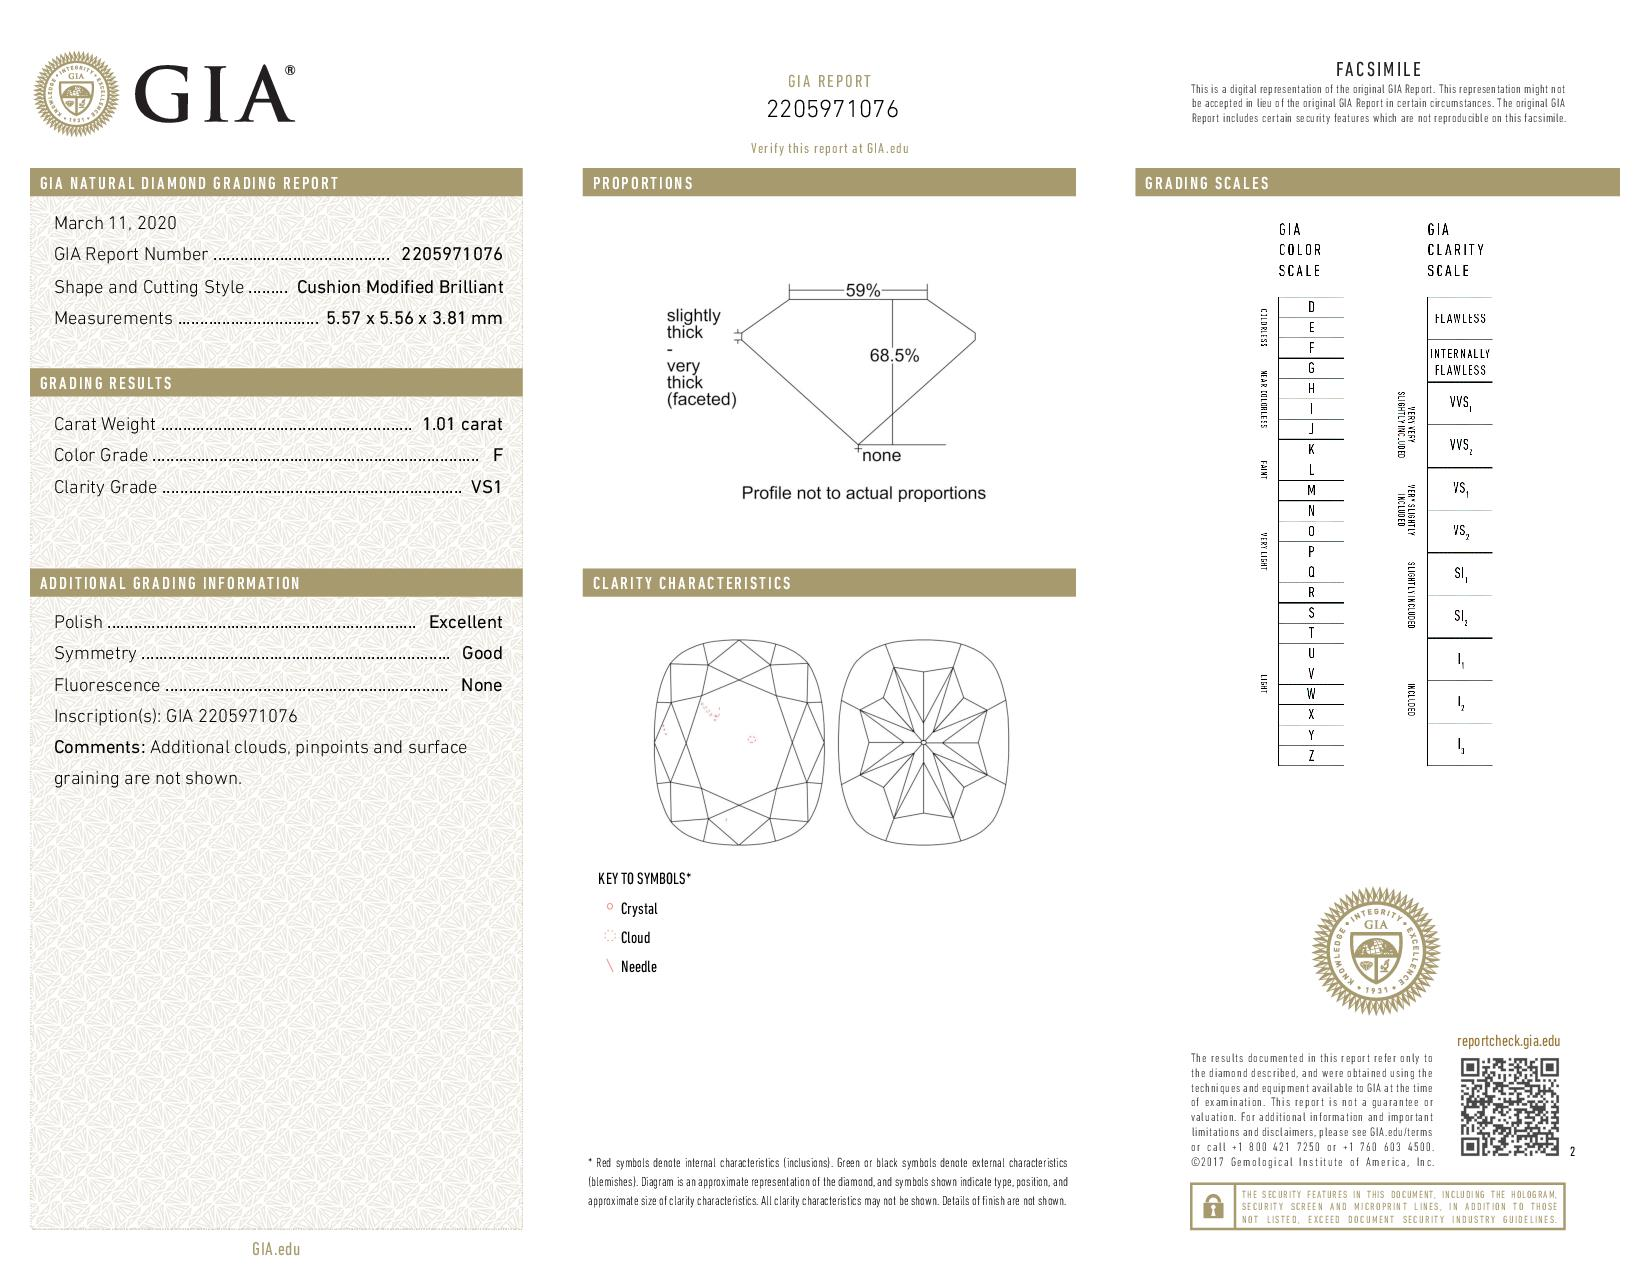 This is a 1.01 carat cushion shape, F color, VS1 clarity natural diamond accompanied by a GIA grading report.